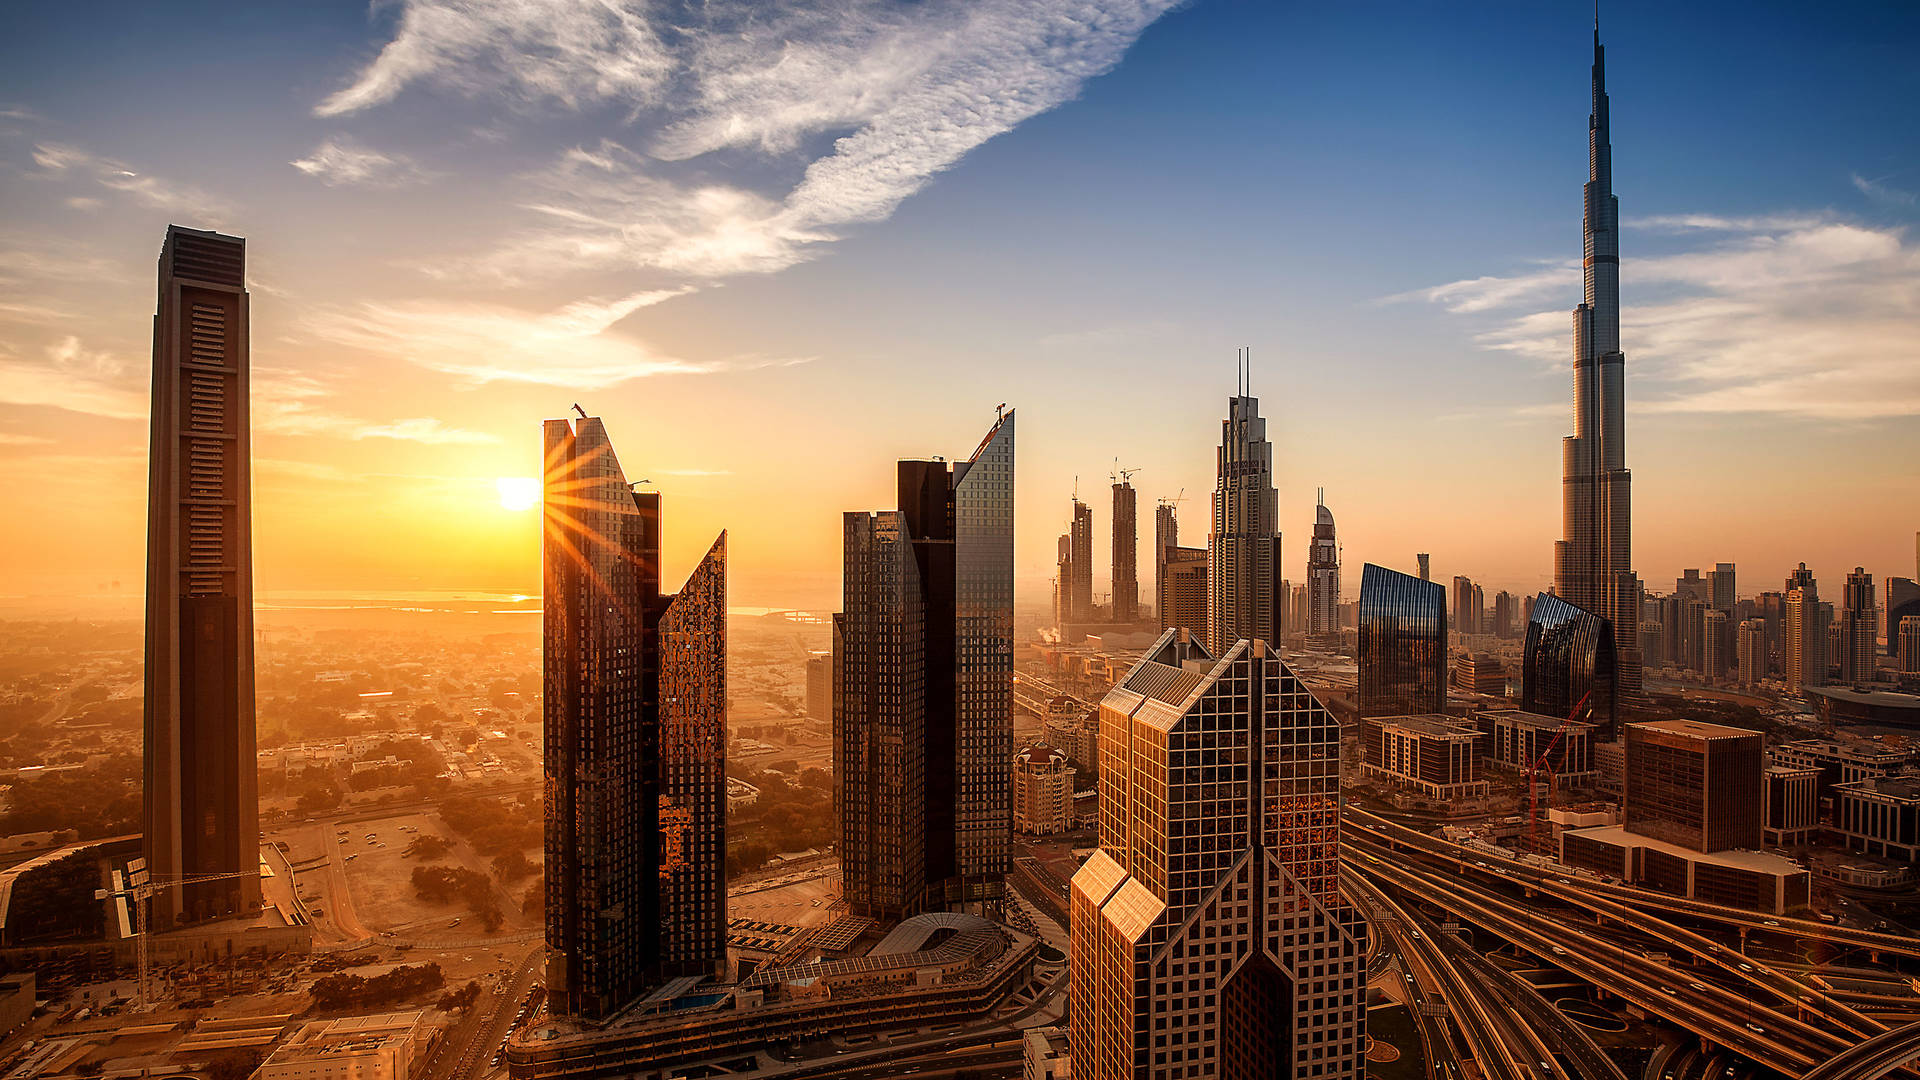 Downtown Dubai at sunrise